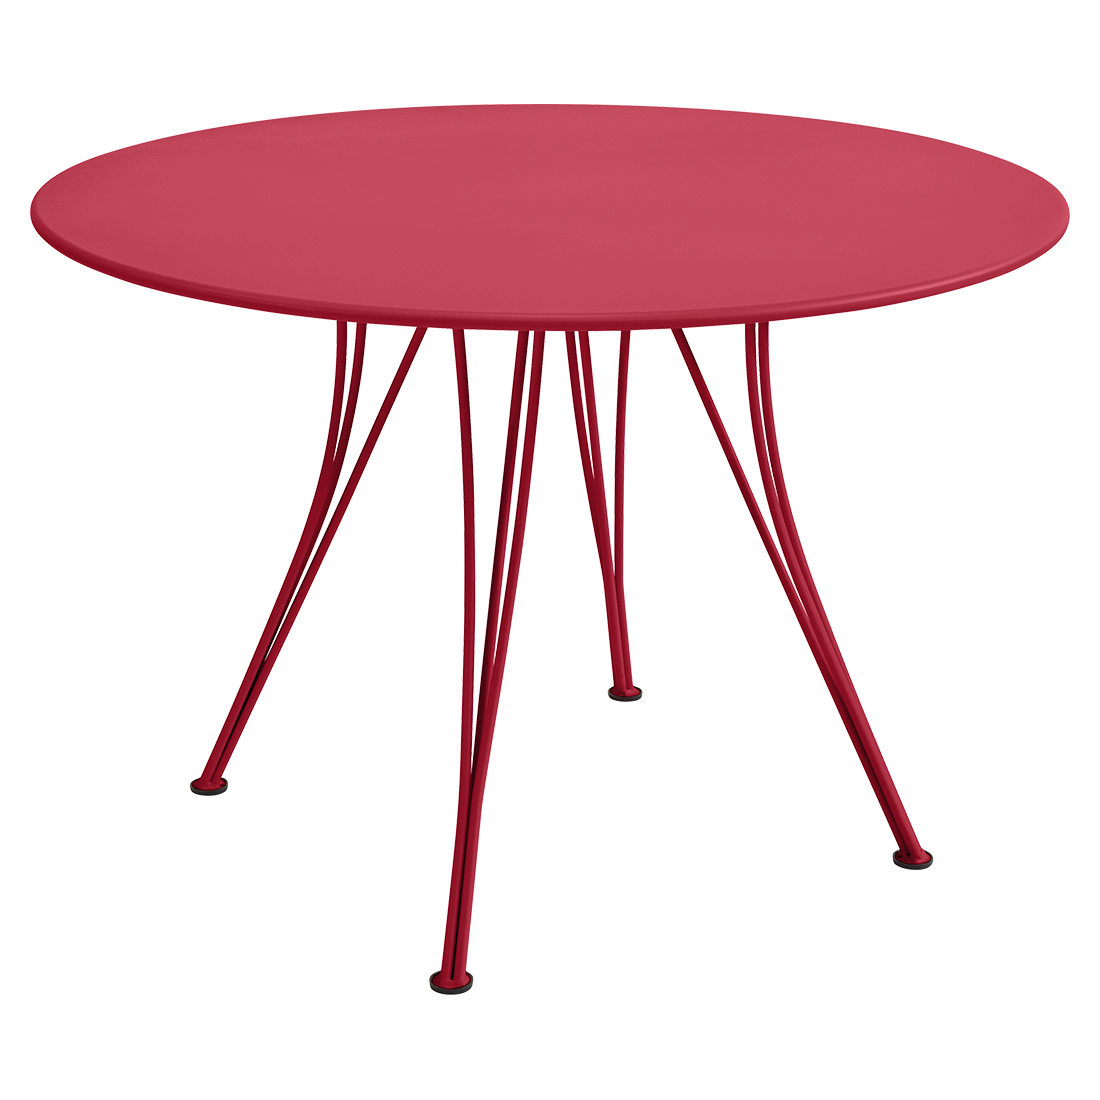 table de jardin, table metal, table ronde, table 5 personnes, table rose